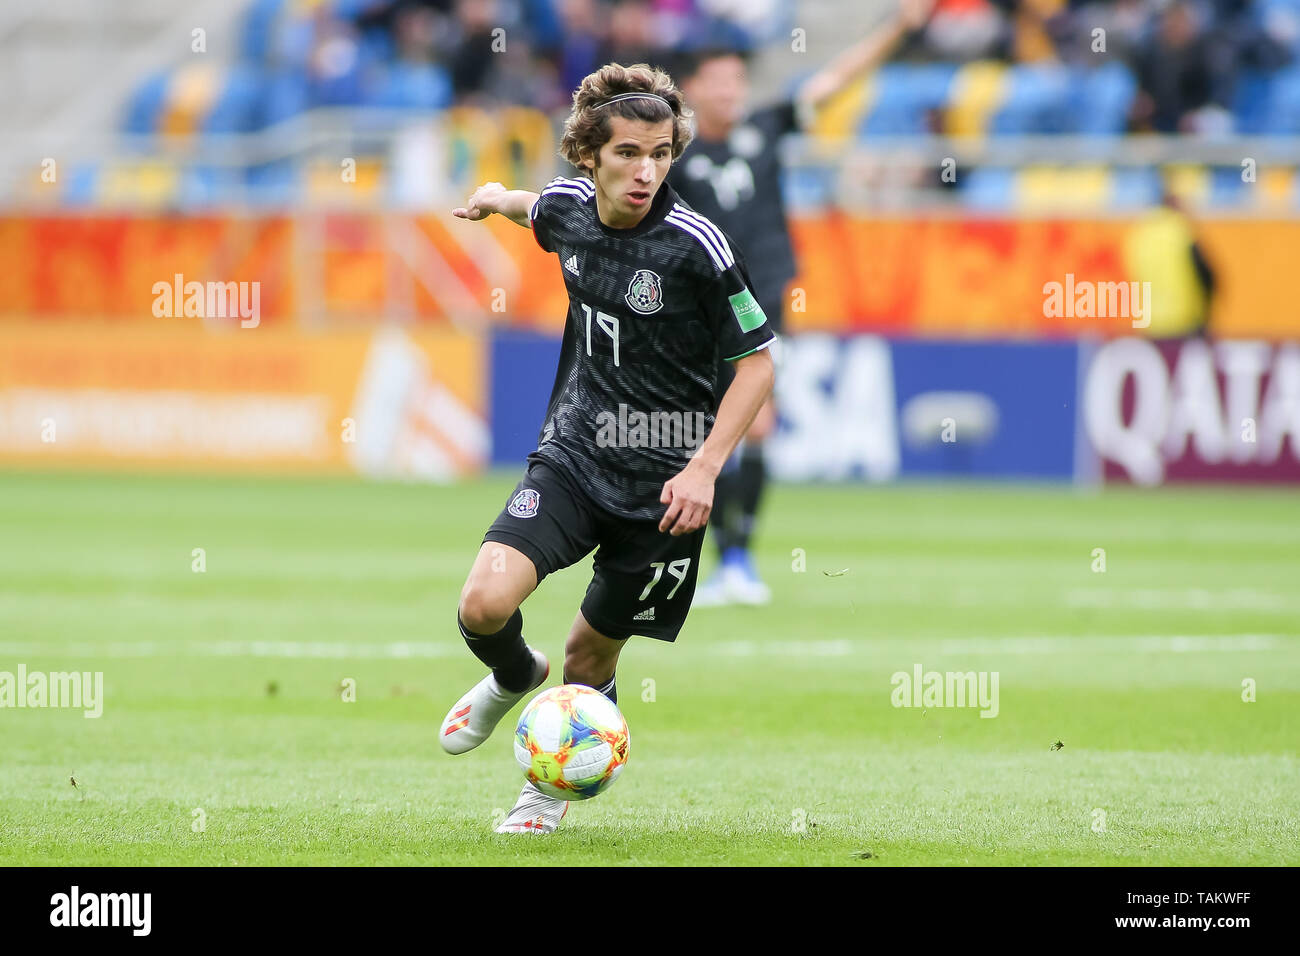 Gdynia Stadium, Gdynia, Poland - 26th May, 2019: Antonio Figueroa from Mexico seen in action during FIFA U-20 World Cup match between Mexico and Japan (GROUP B) in Gdynia. (Final score; Mexico 0:3 Japan) - Stock Image